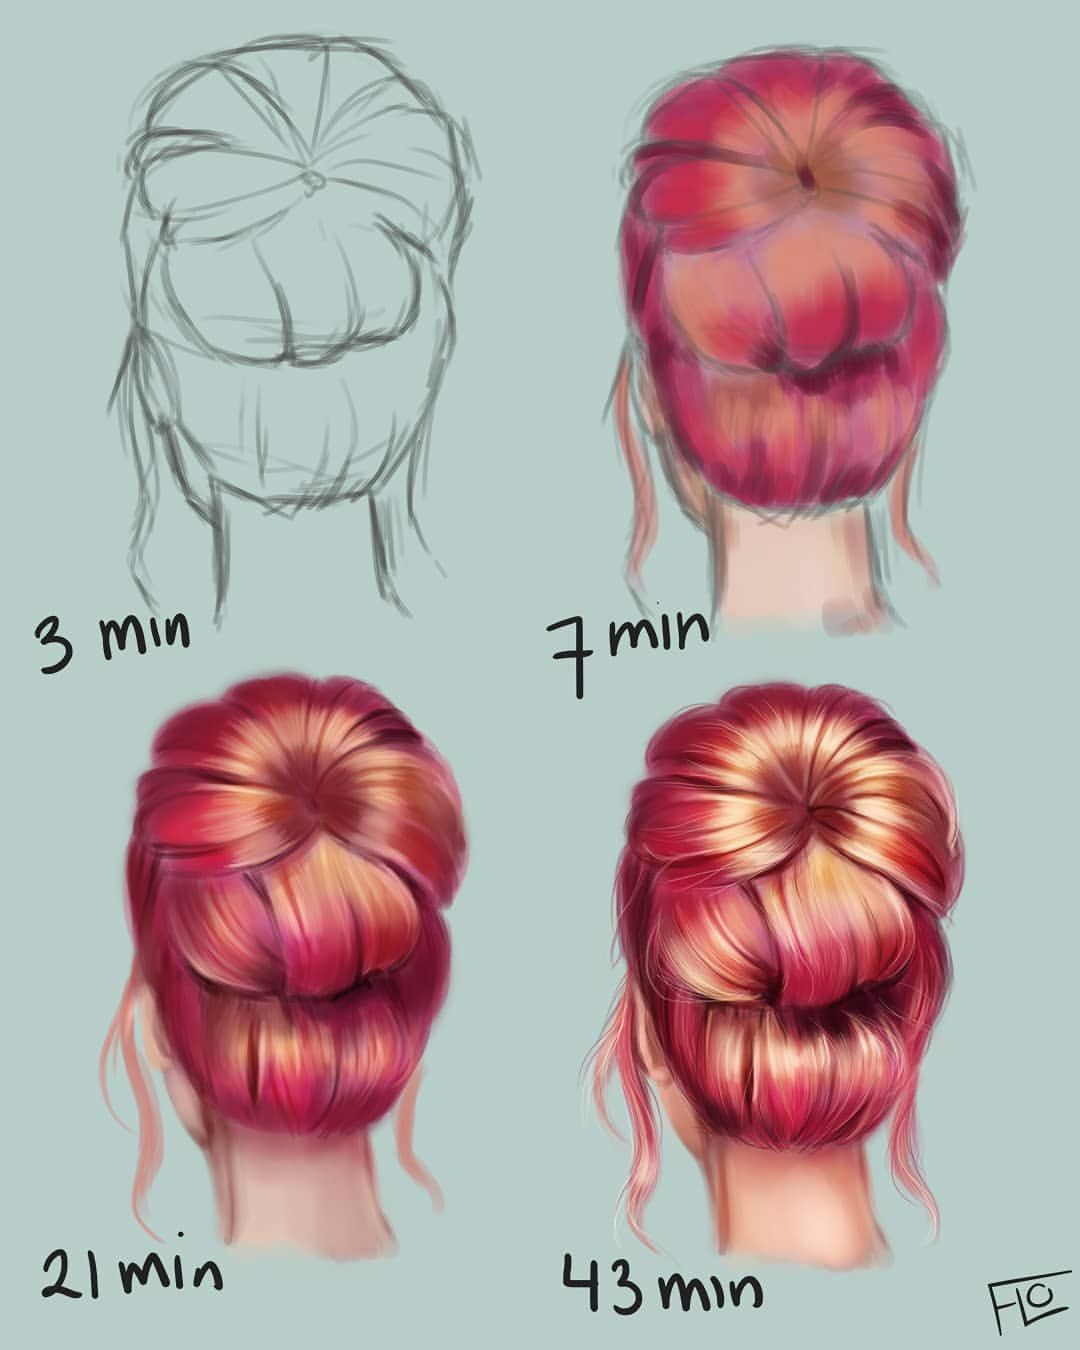 Painting Hair What Color Is Your Hair I Have Straight Dark Blonde Hair Bu Digital Art Beginner Digital Art Tutorial Digital Painting Tutorials